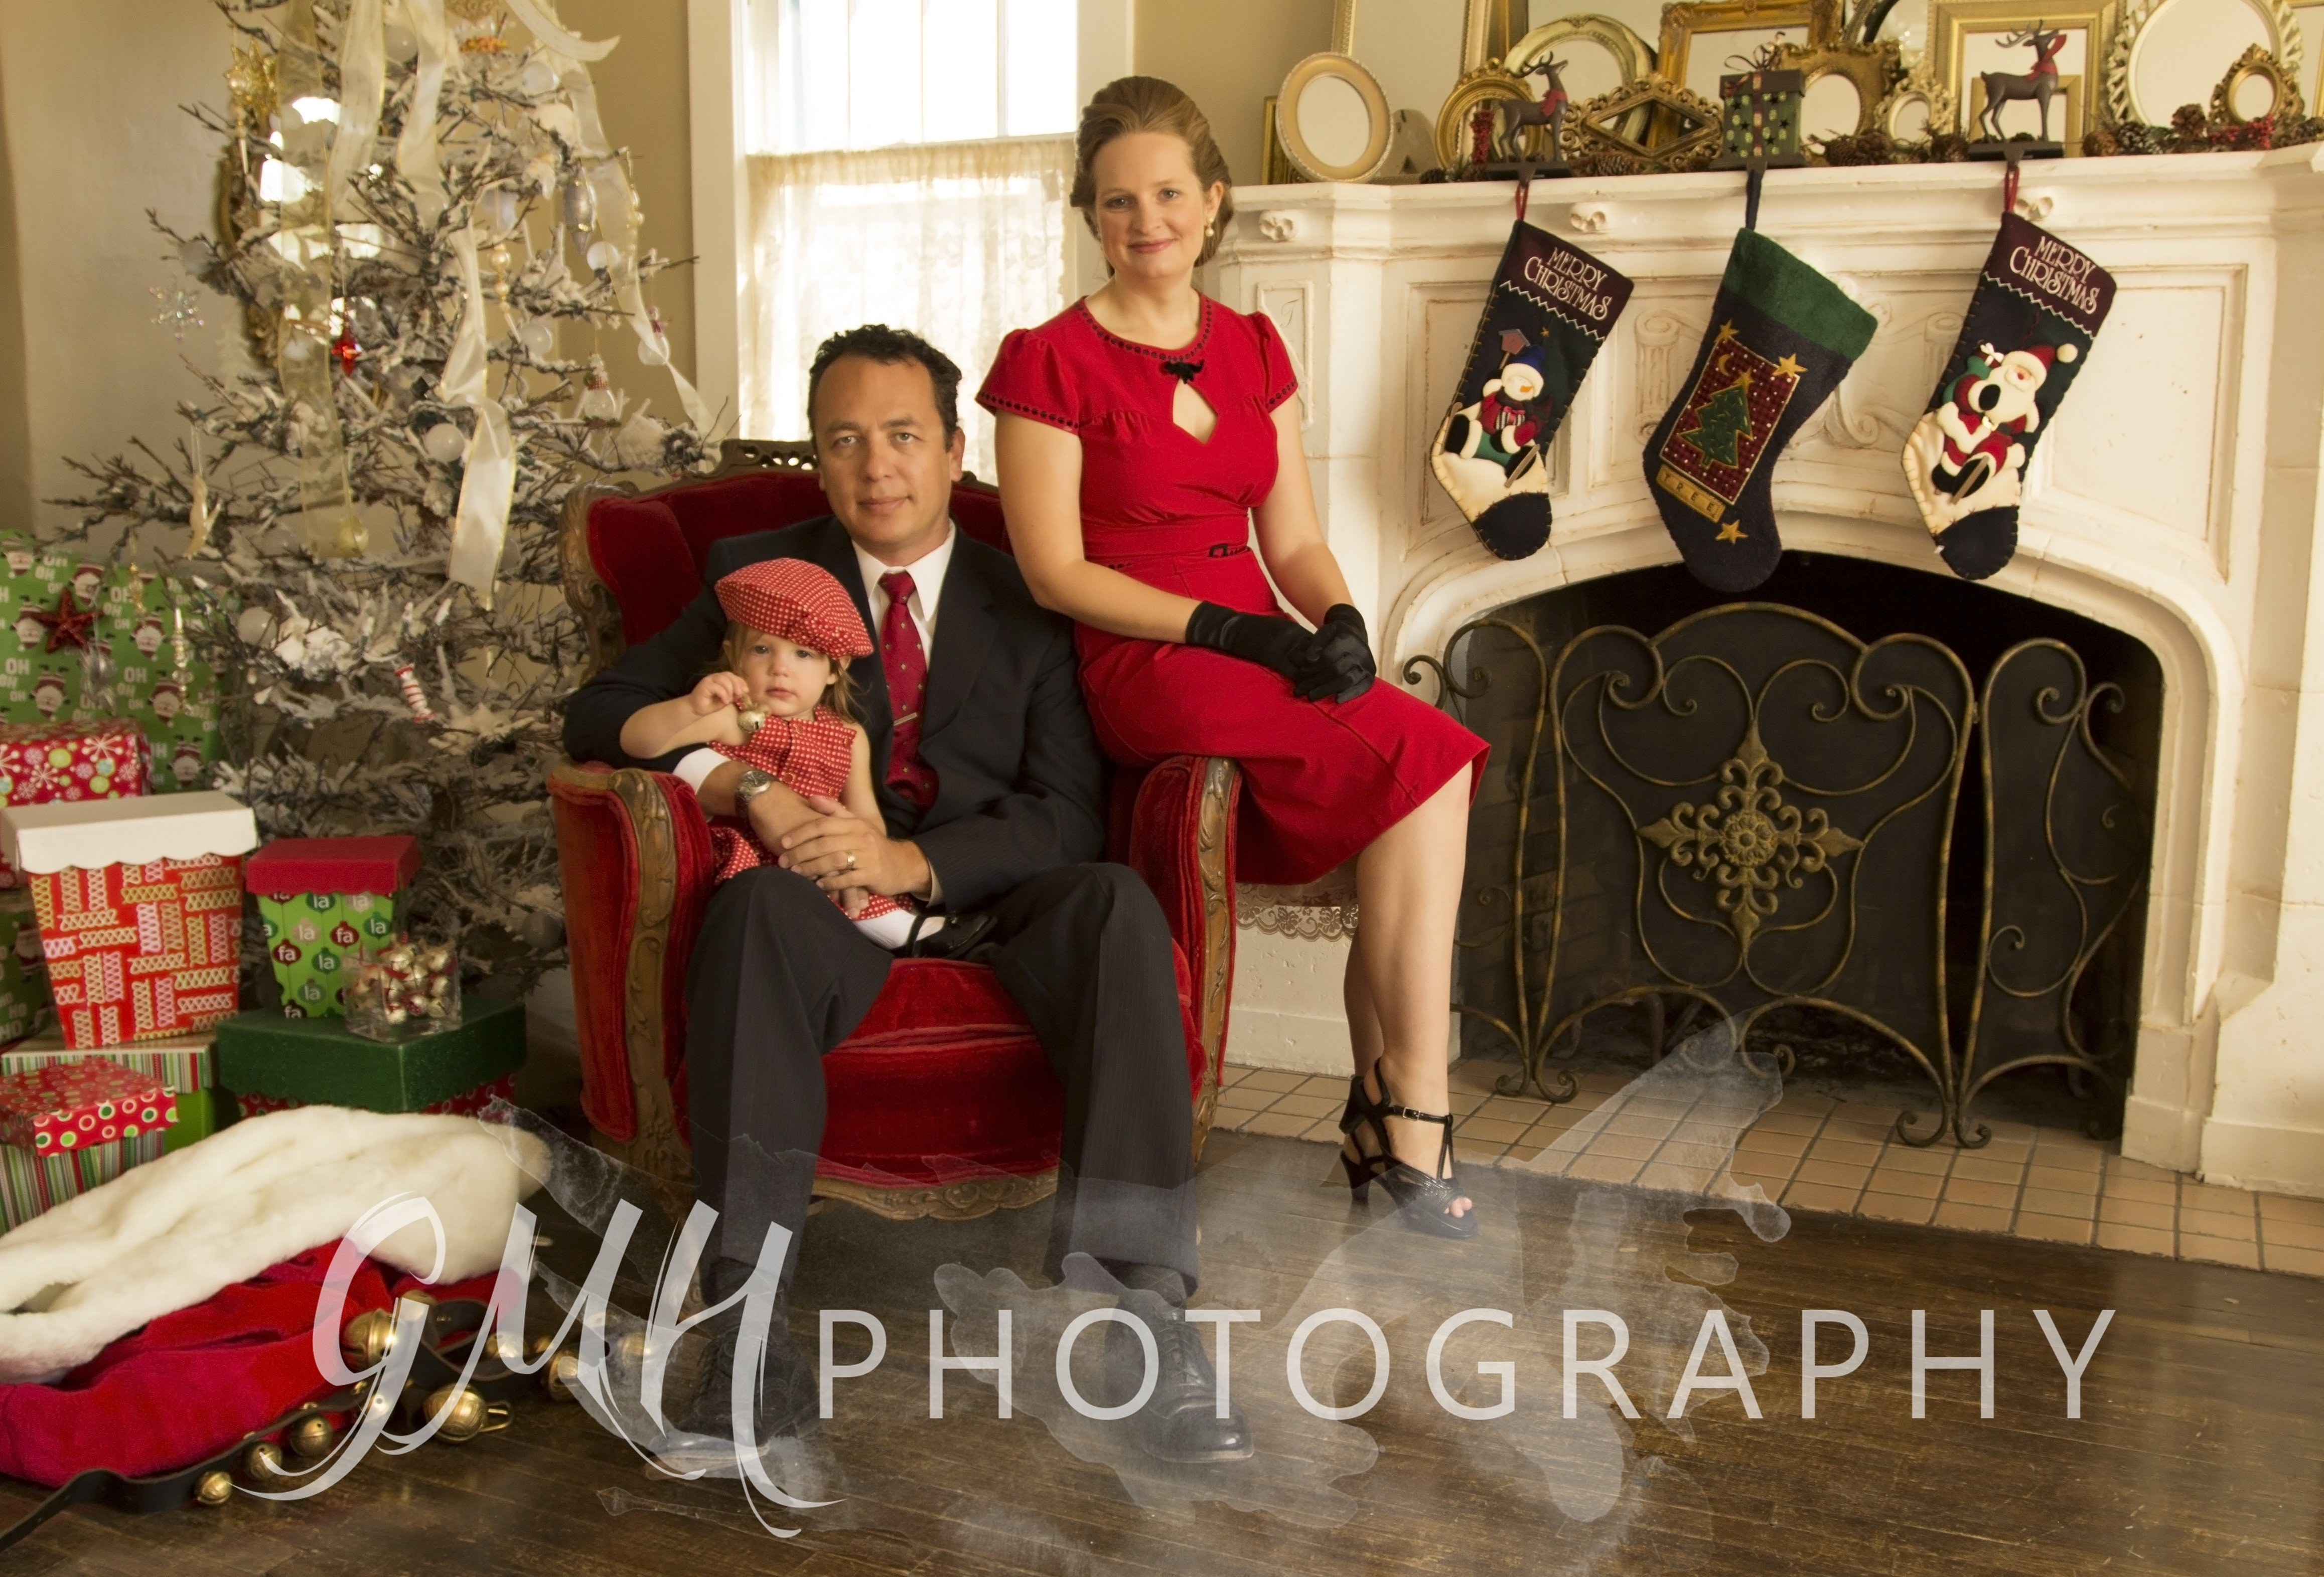 10 Trendy Family Christmas Photo Ideas With Baby unique formal family photo shoot ideas compilation photo and 1